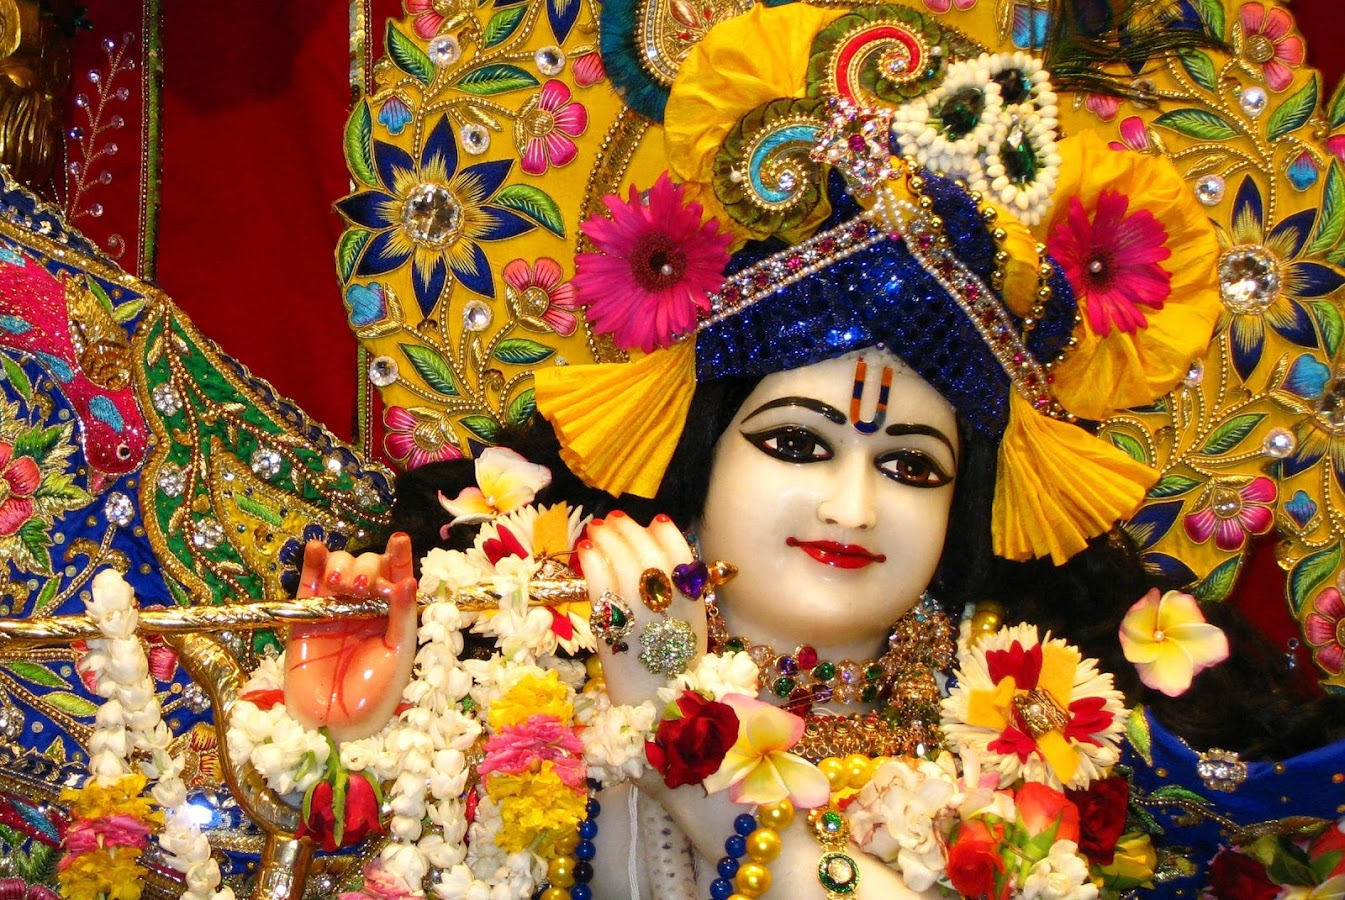 jai shree krishna wallpaper hd 1.0 apk download - android